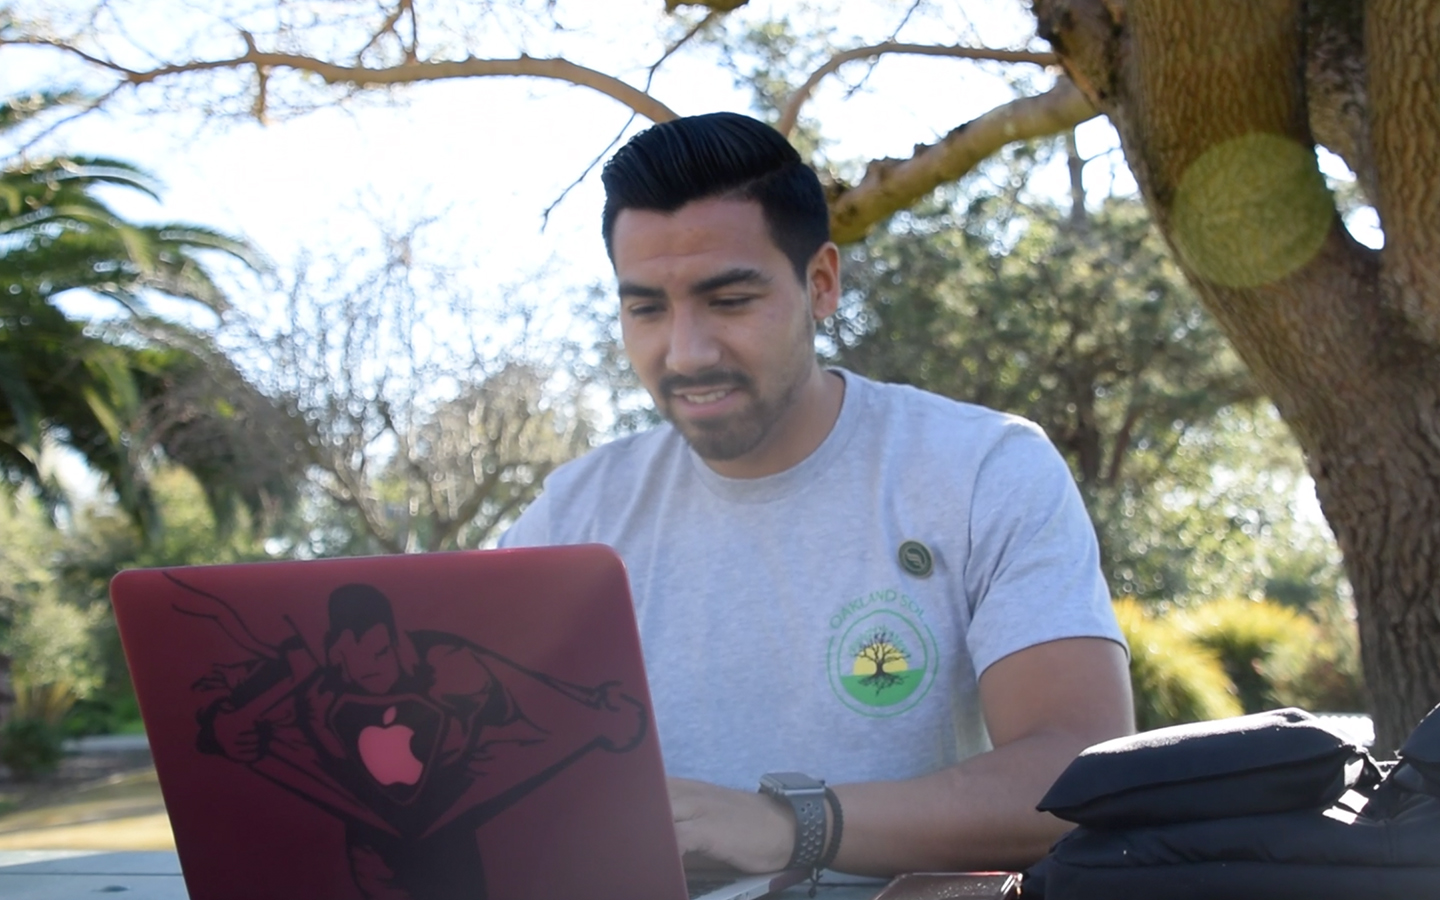 HNU student working on loaner laptop from the loaner laptop program